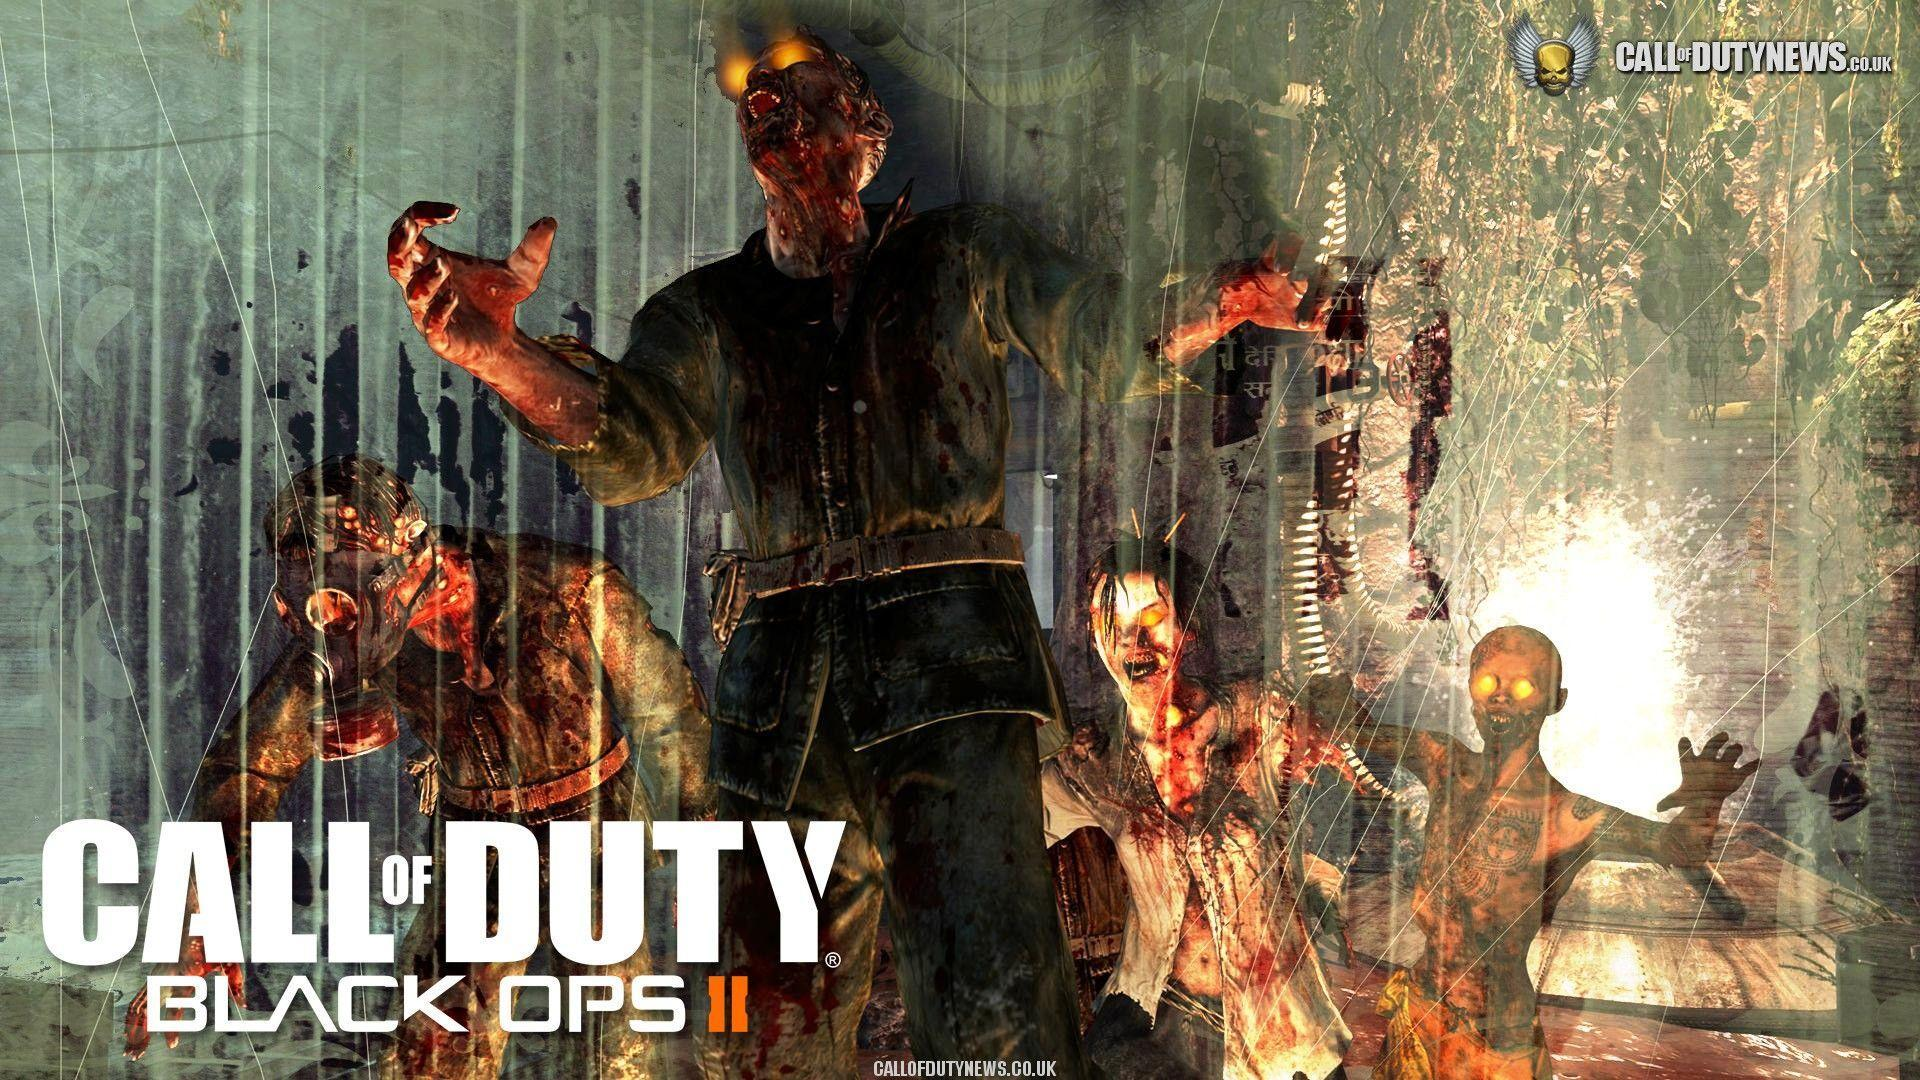 Black Ops Zombies Wallpaper 1080p